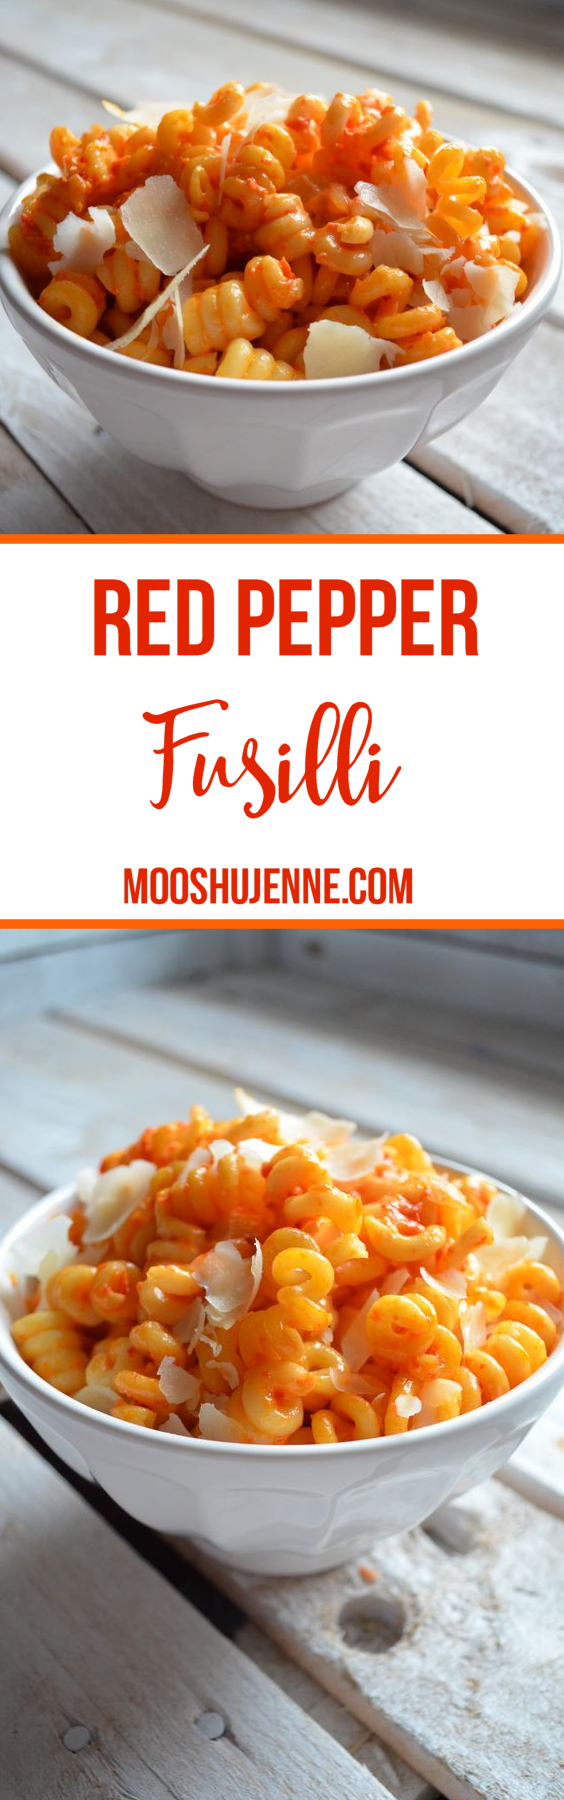 Red Pepper Fusilli